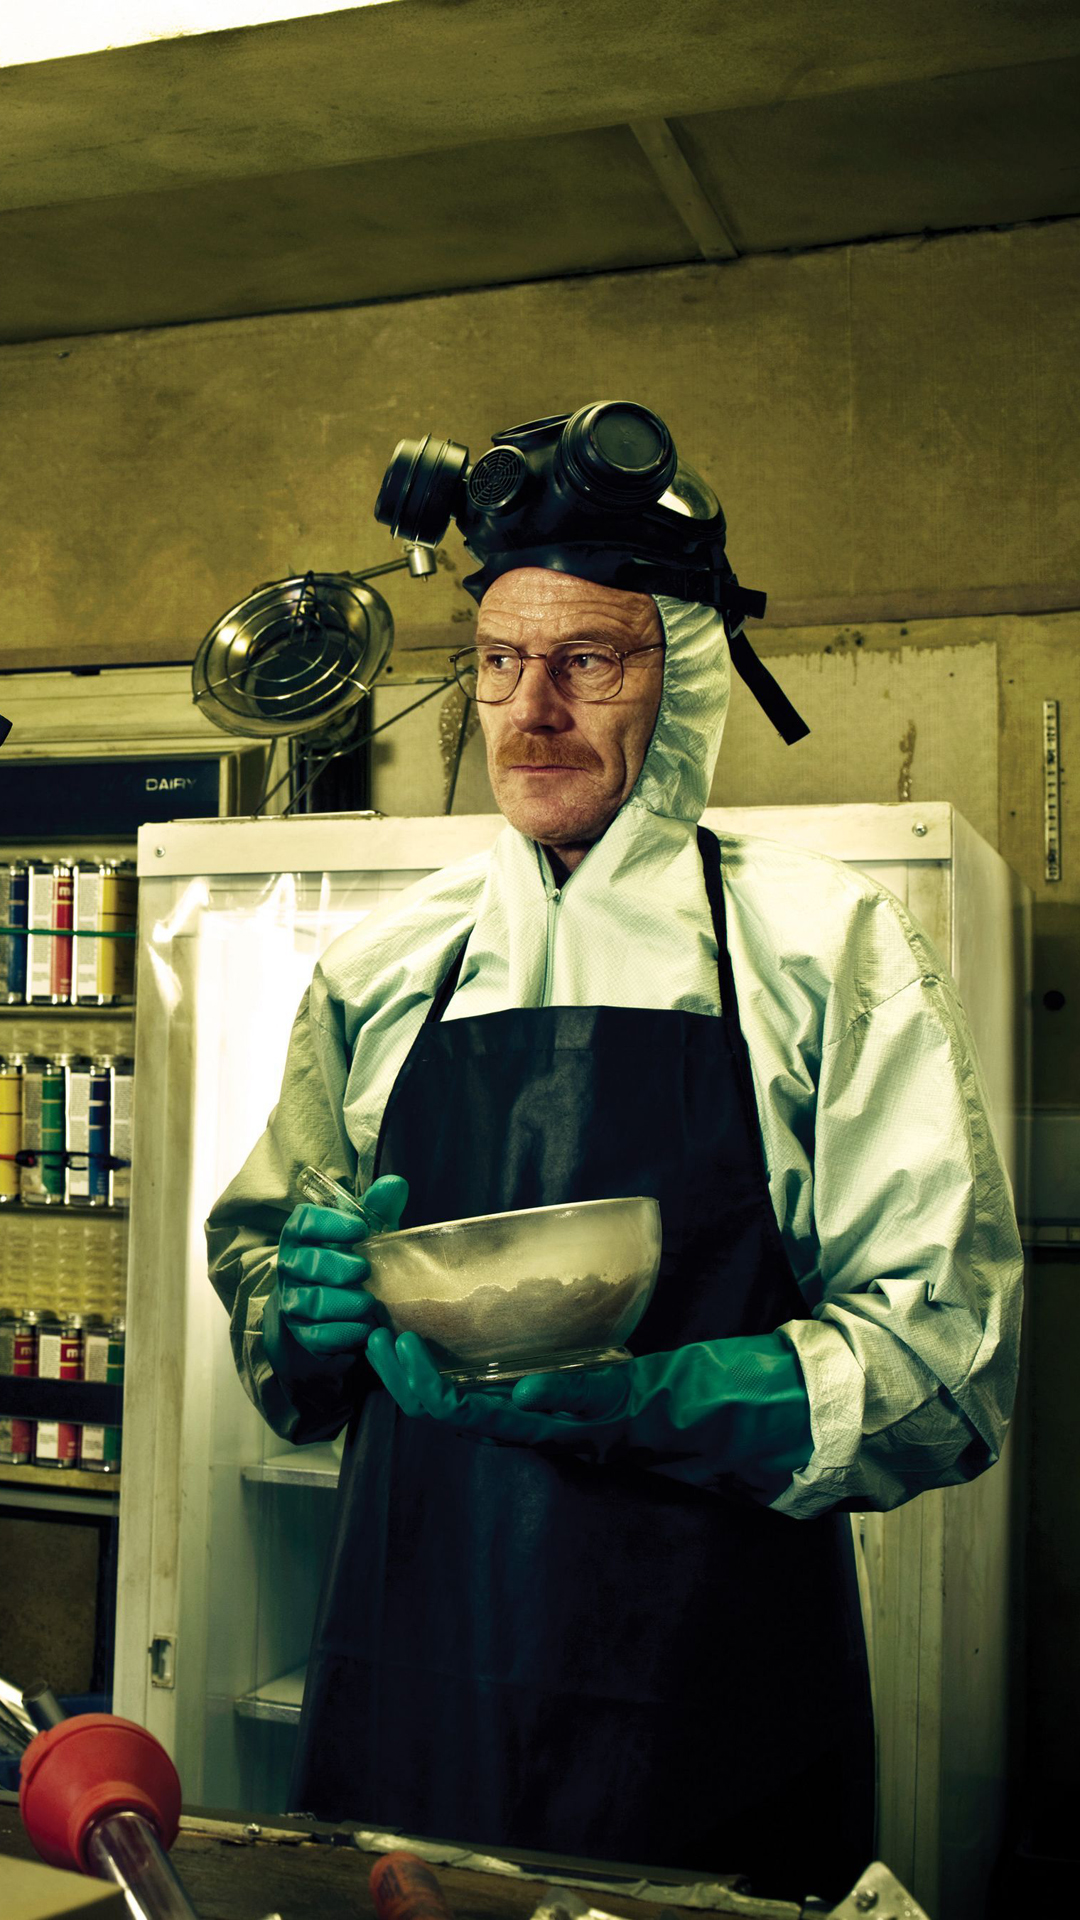 Fantastic Cars Hd Wallpapers Mr White Breaking Bad Htc One Wallpaper Best Htc One